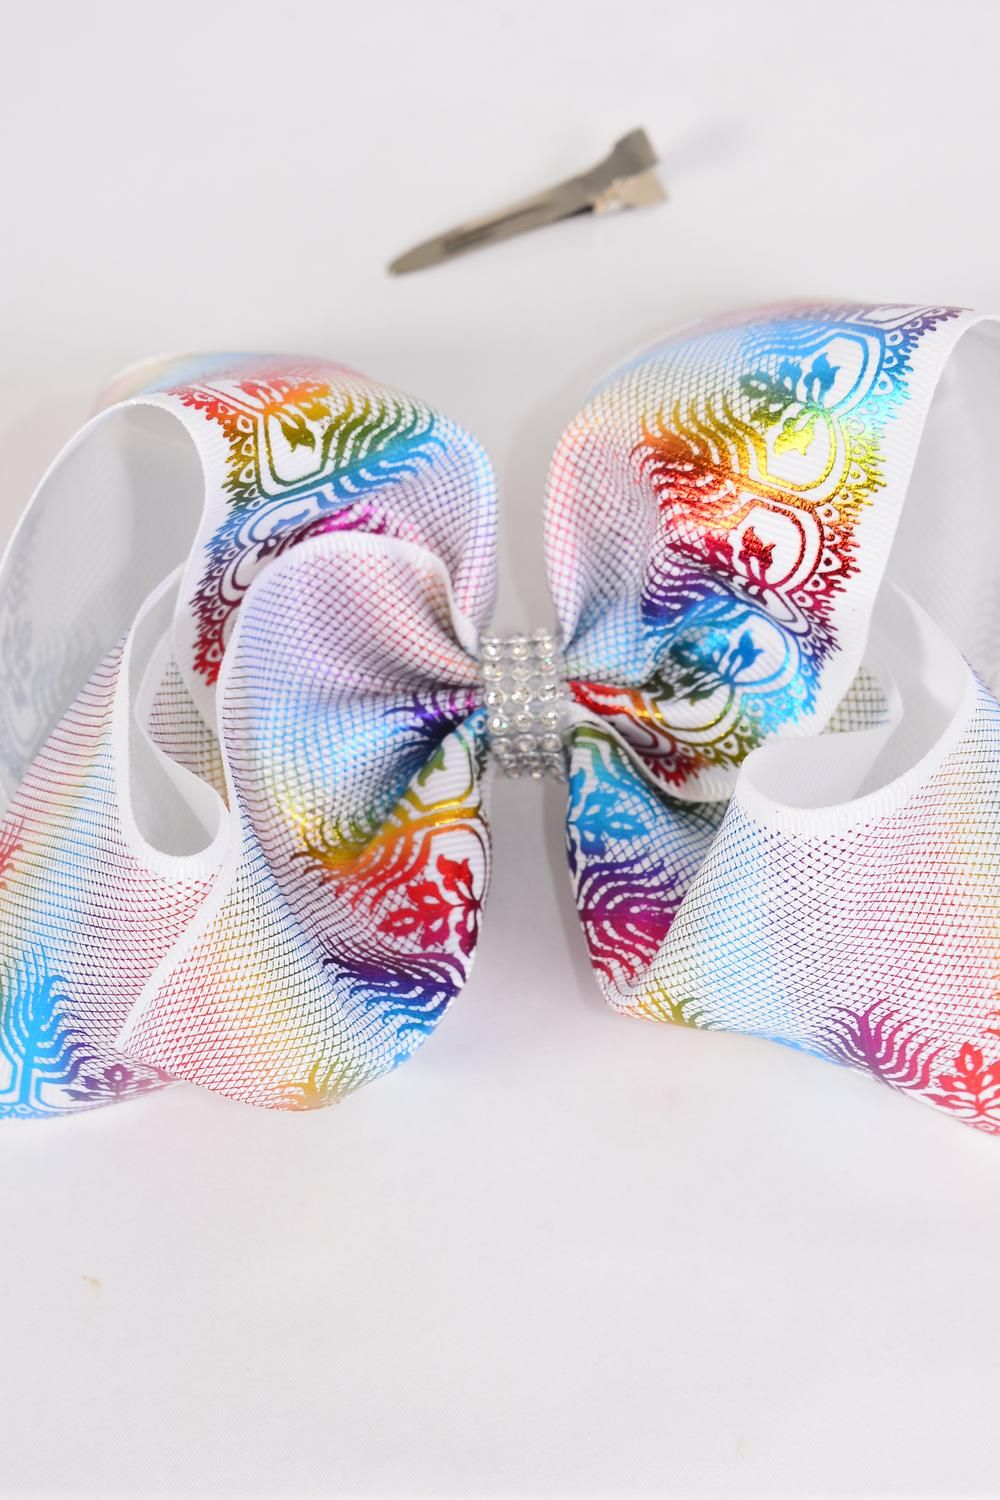 "Hair Bow Jumbo Cheer Type Bow Rainbow Metallic Holographic Center Clear Stone Grosgrain Bow-tie/DZ **Alligator Clip** Size-8""x 7"" Wide,Clip Strip & UPC Code"